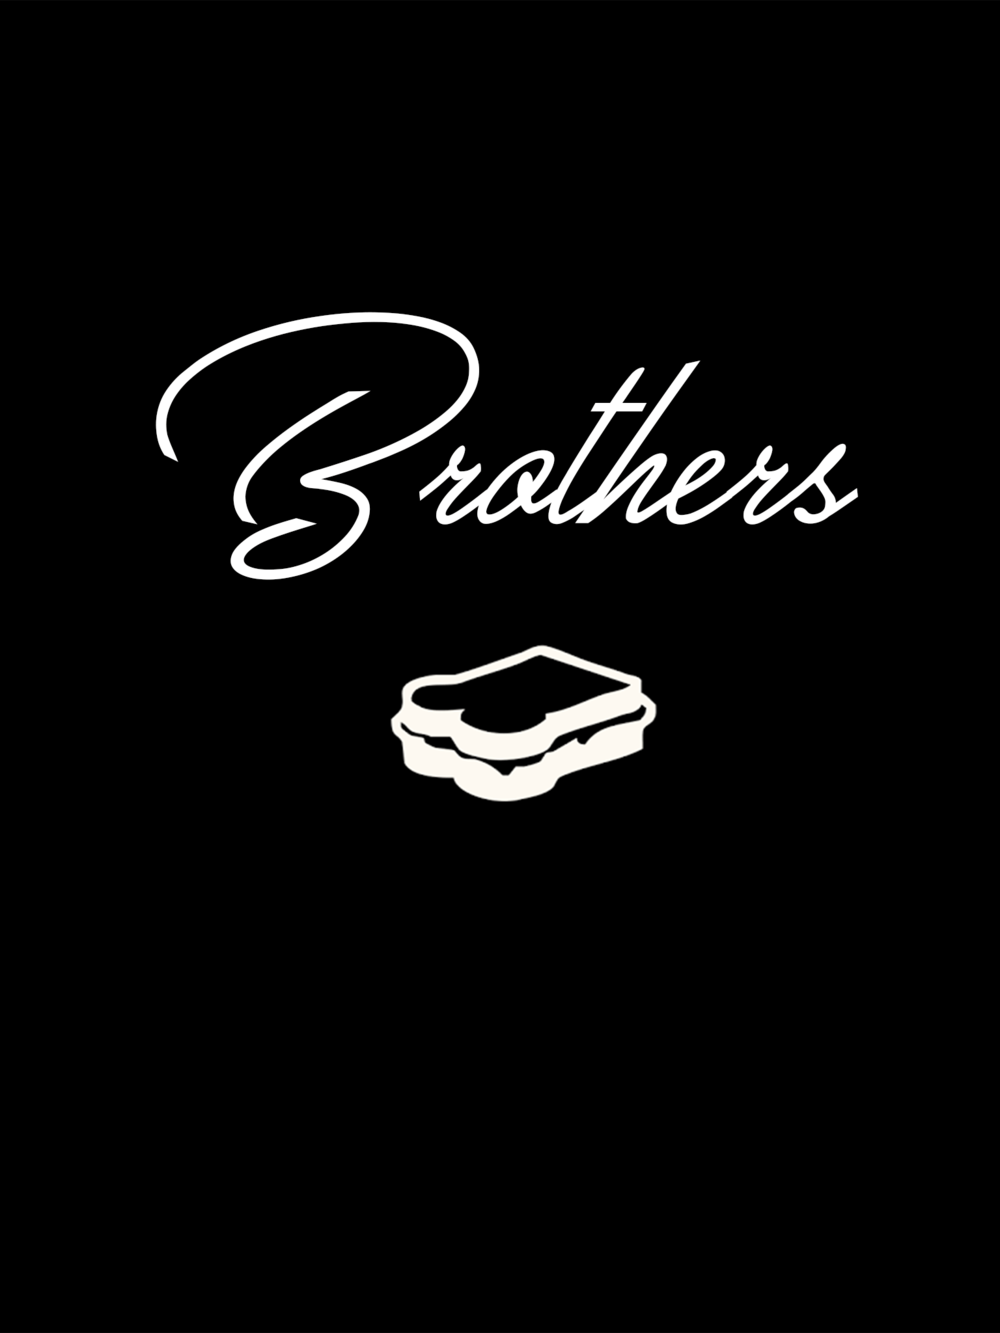 Brotherzz (2).png